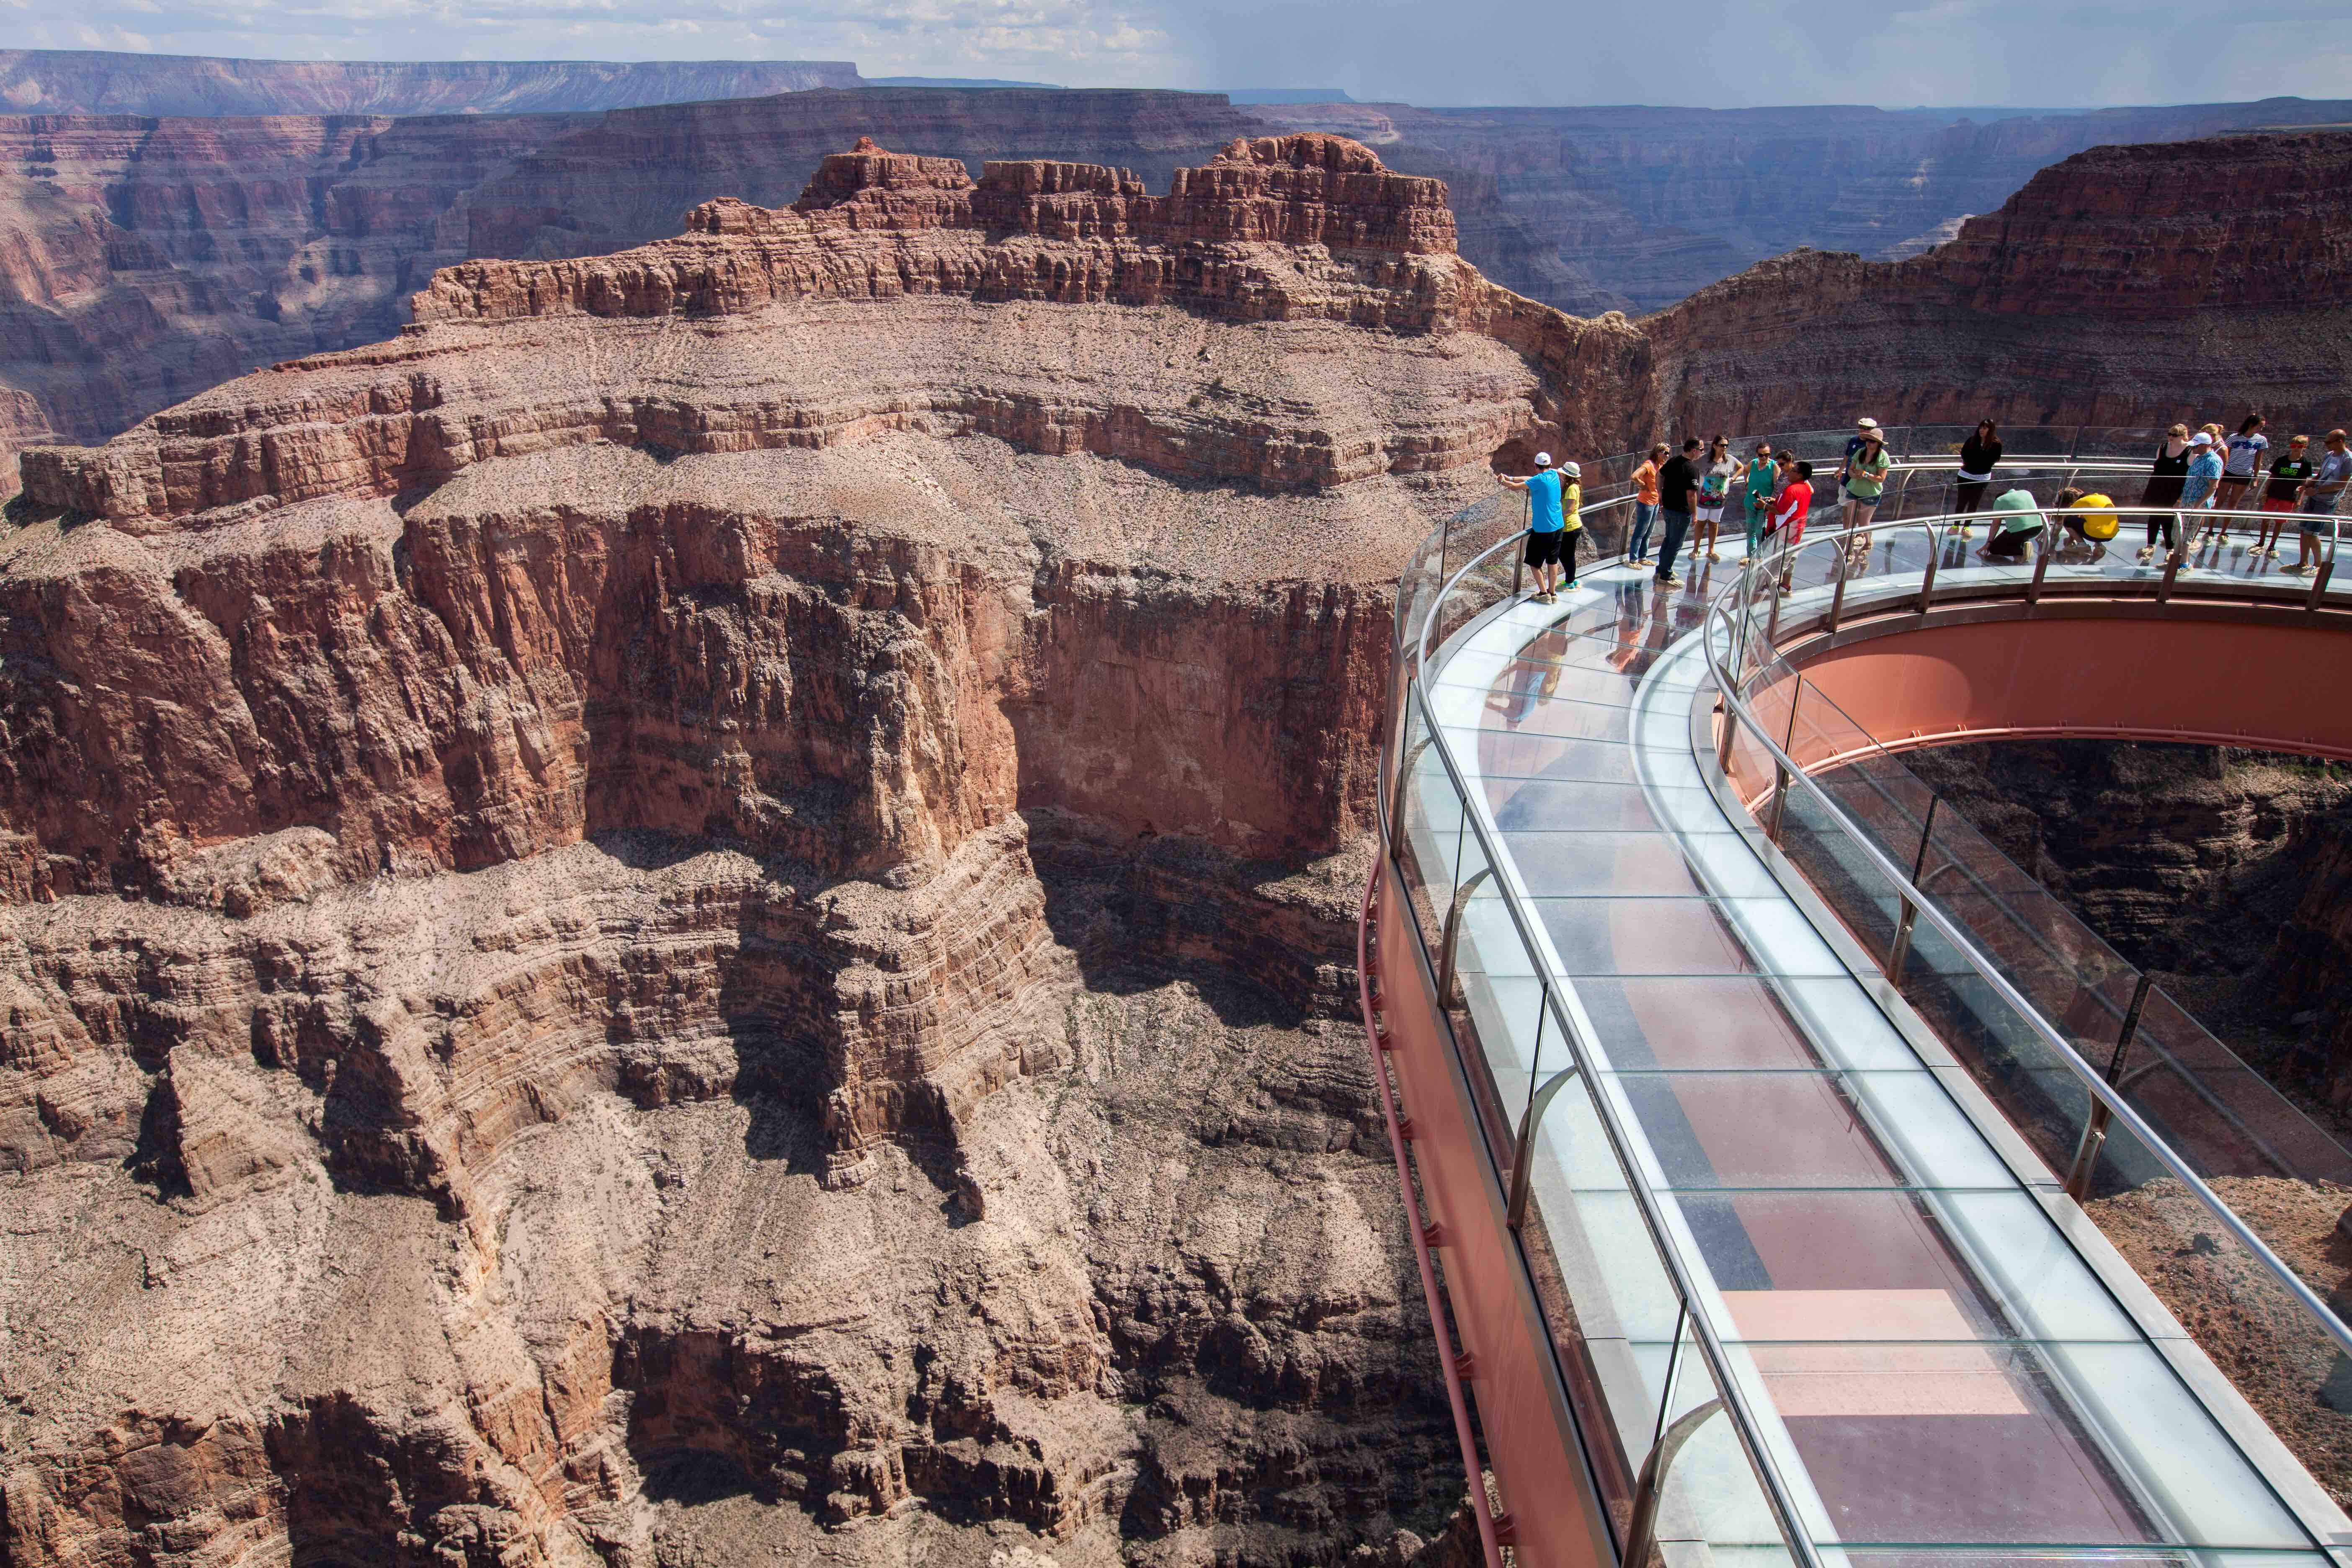 Book Online Direct And Save 50 Per Person On The Grand Canyon Skywalk Express Helicopter Tour